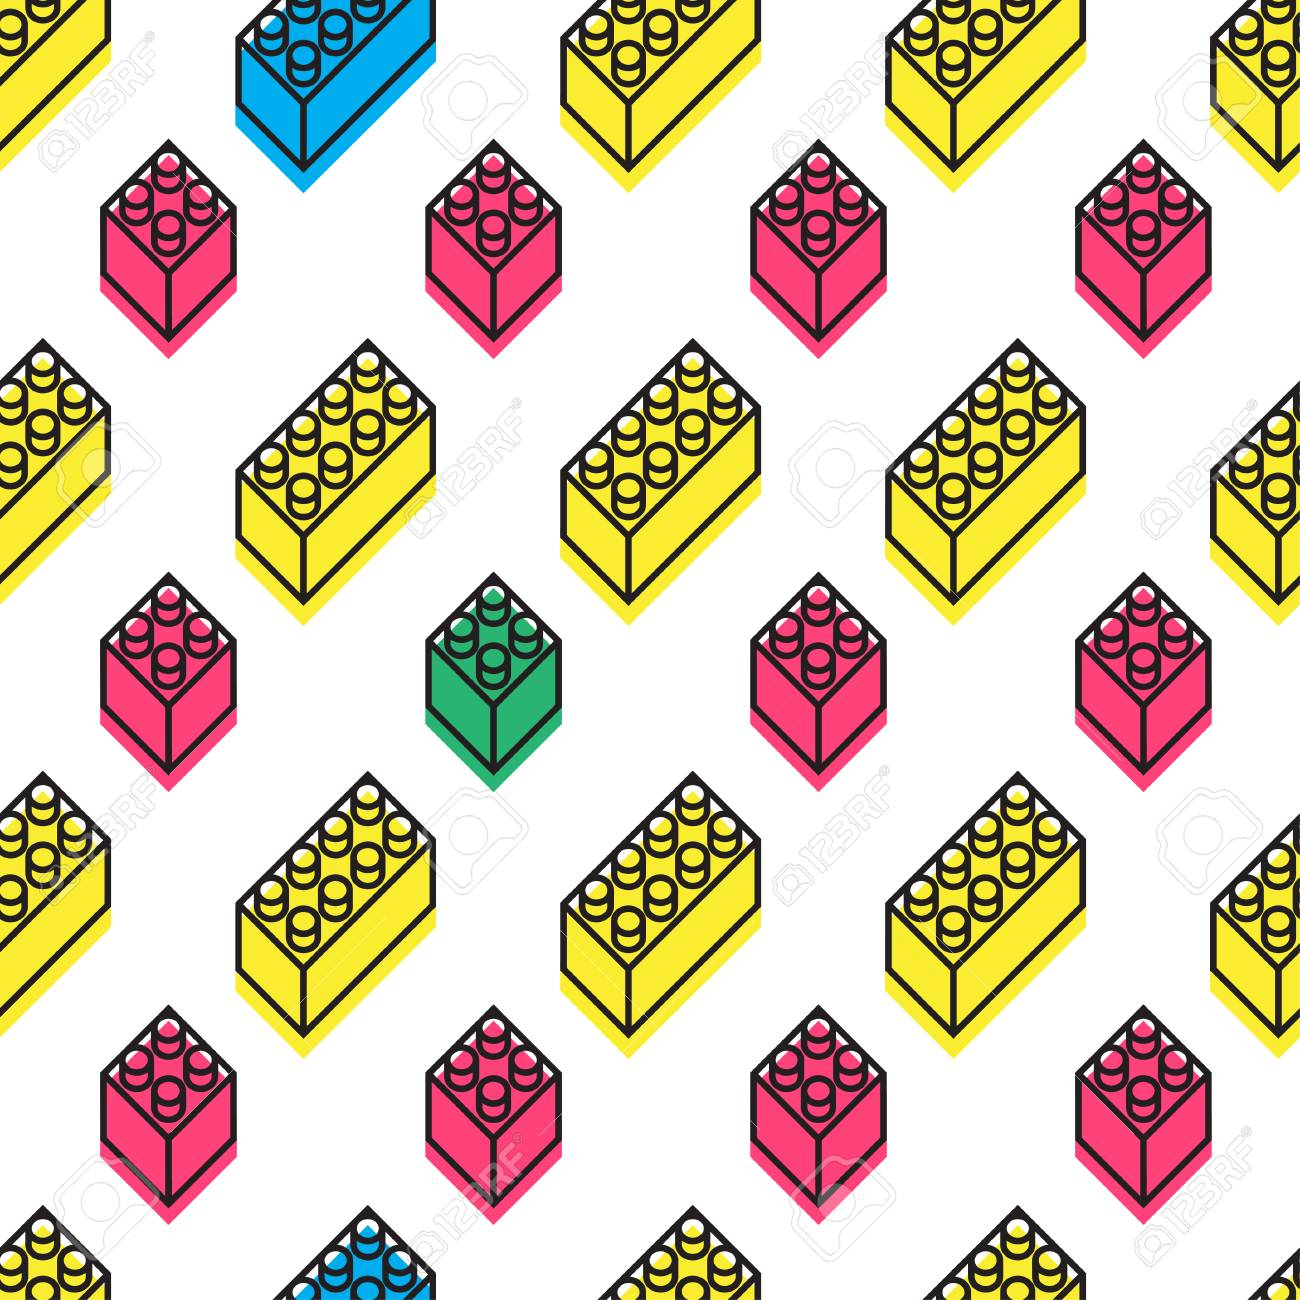 Seamless pattern with simple isometric forms  Memphis design